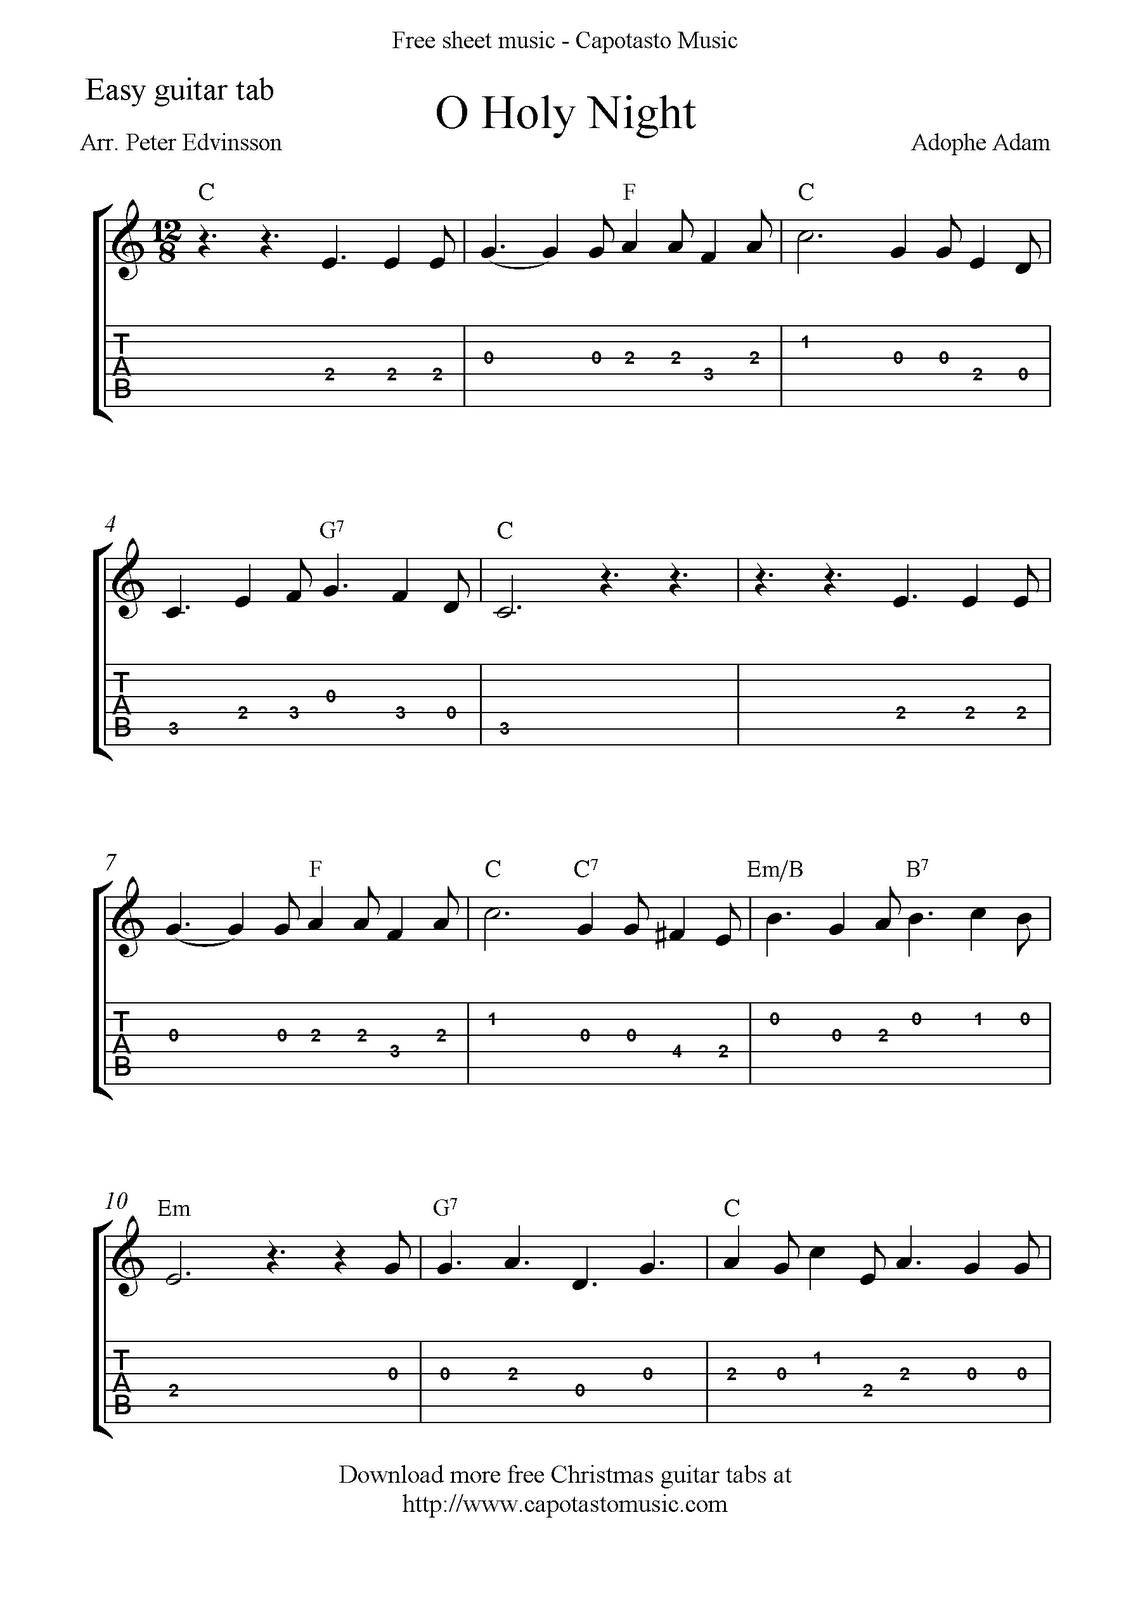 O Holy Night, free easy Christmas guitar sheet music and guitar tabs